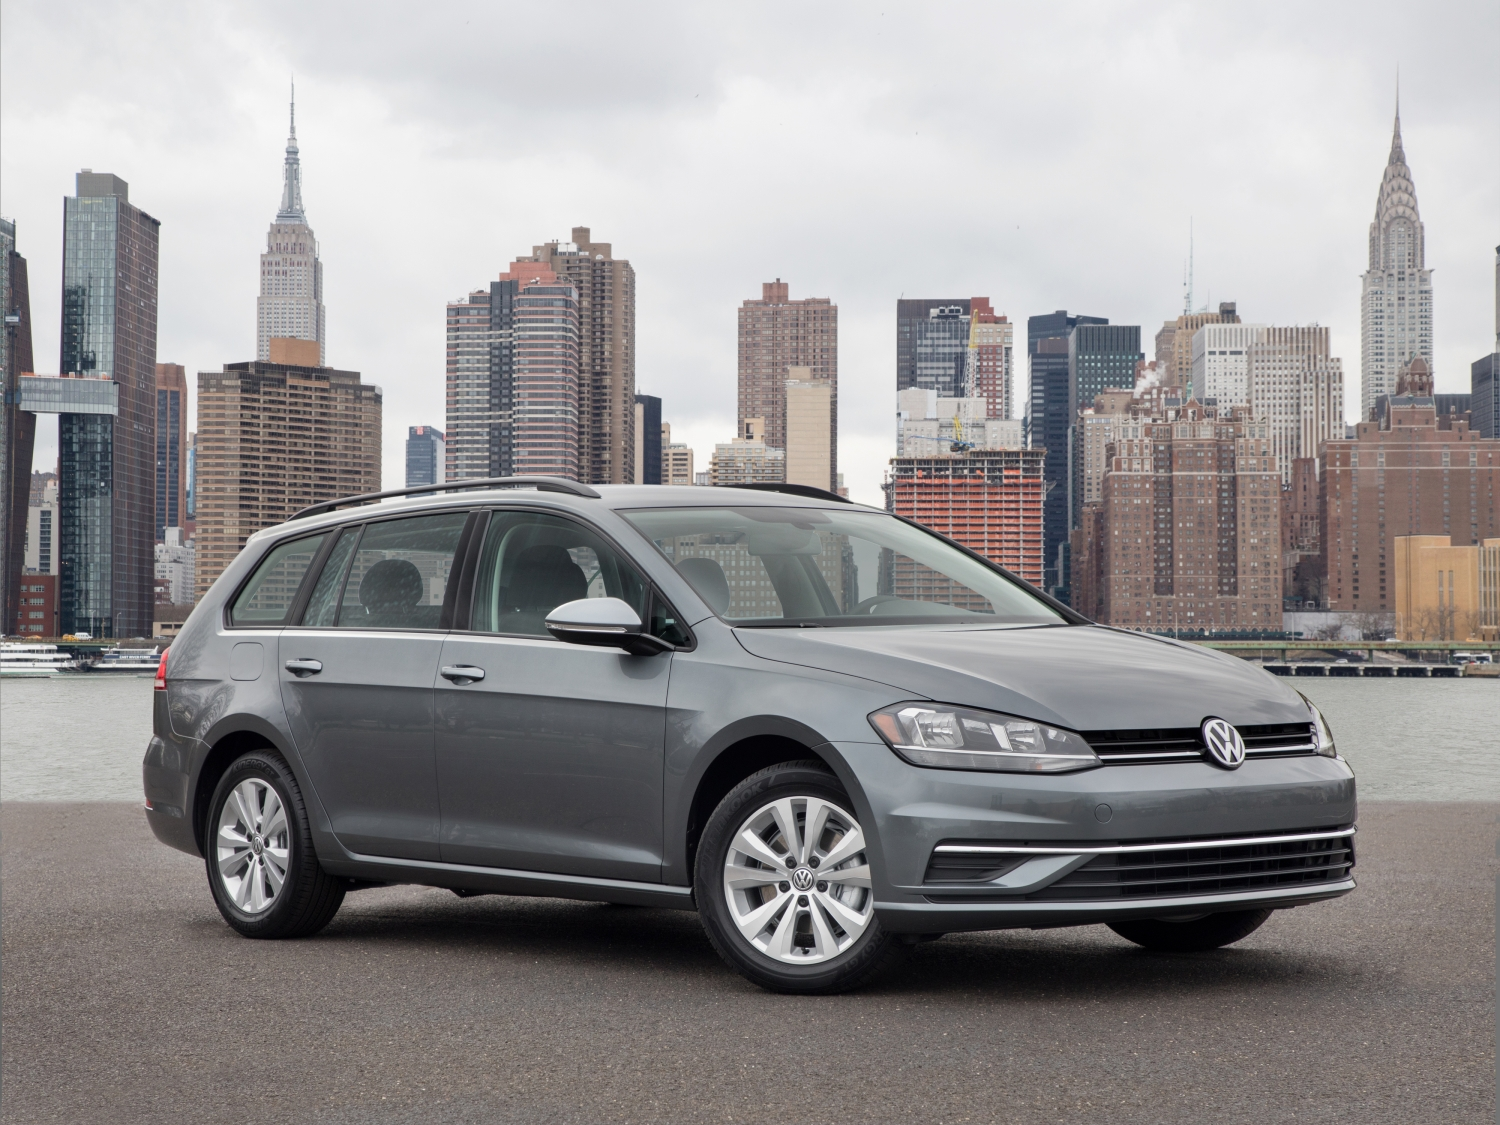 VW Golf SportWagen Named Best Wagon In 2019 AutoWeb Buyer's Choice Awards